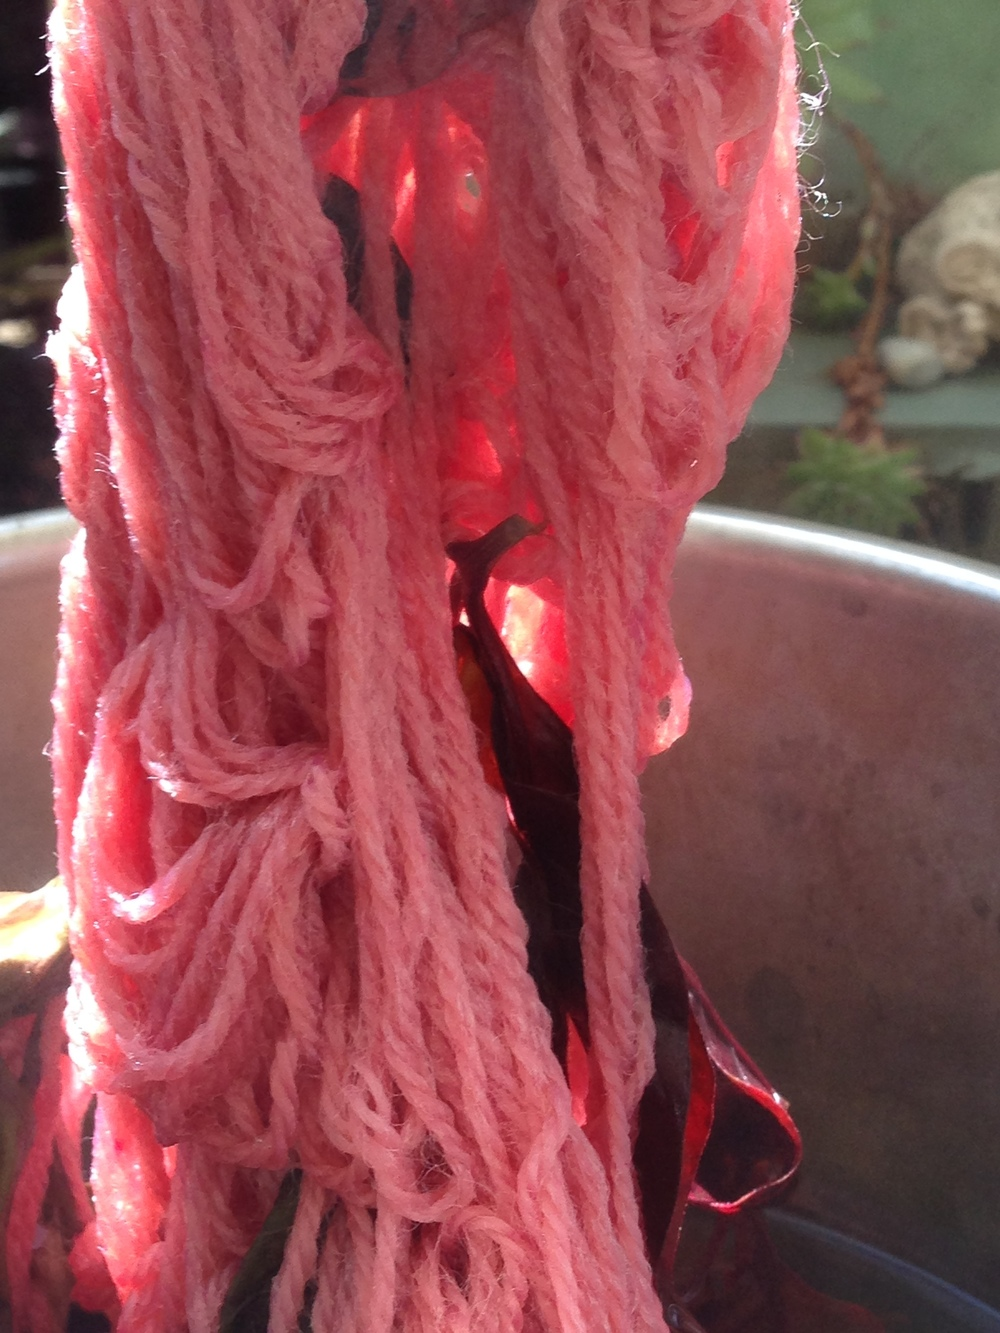 Promising start to boiling... the colour changed considerably the longer it boiled.